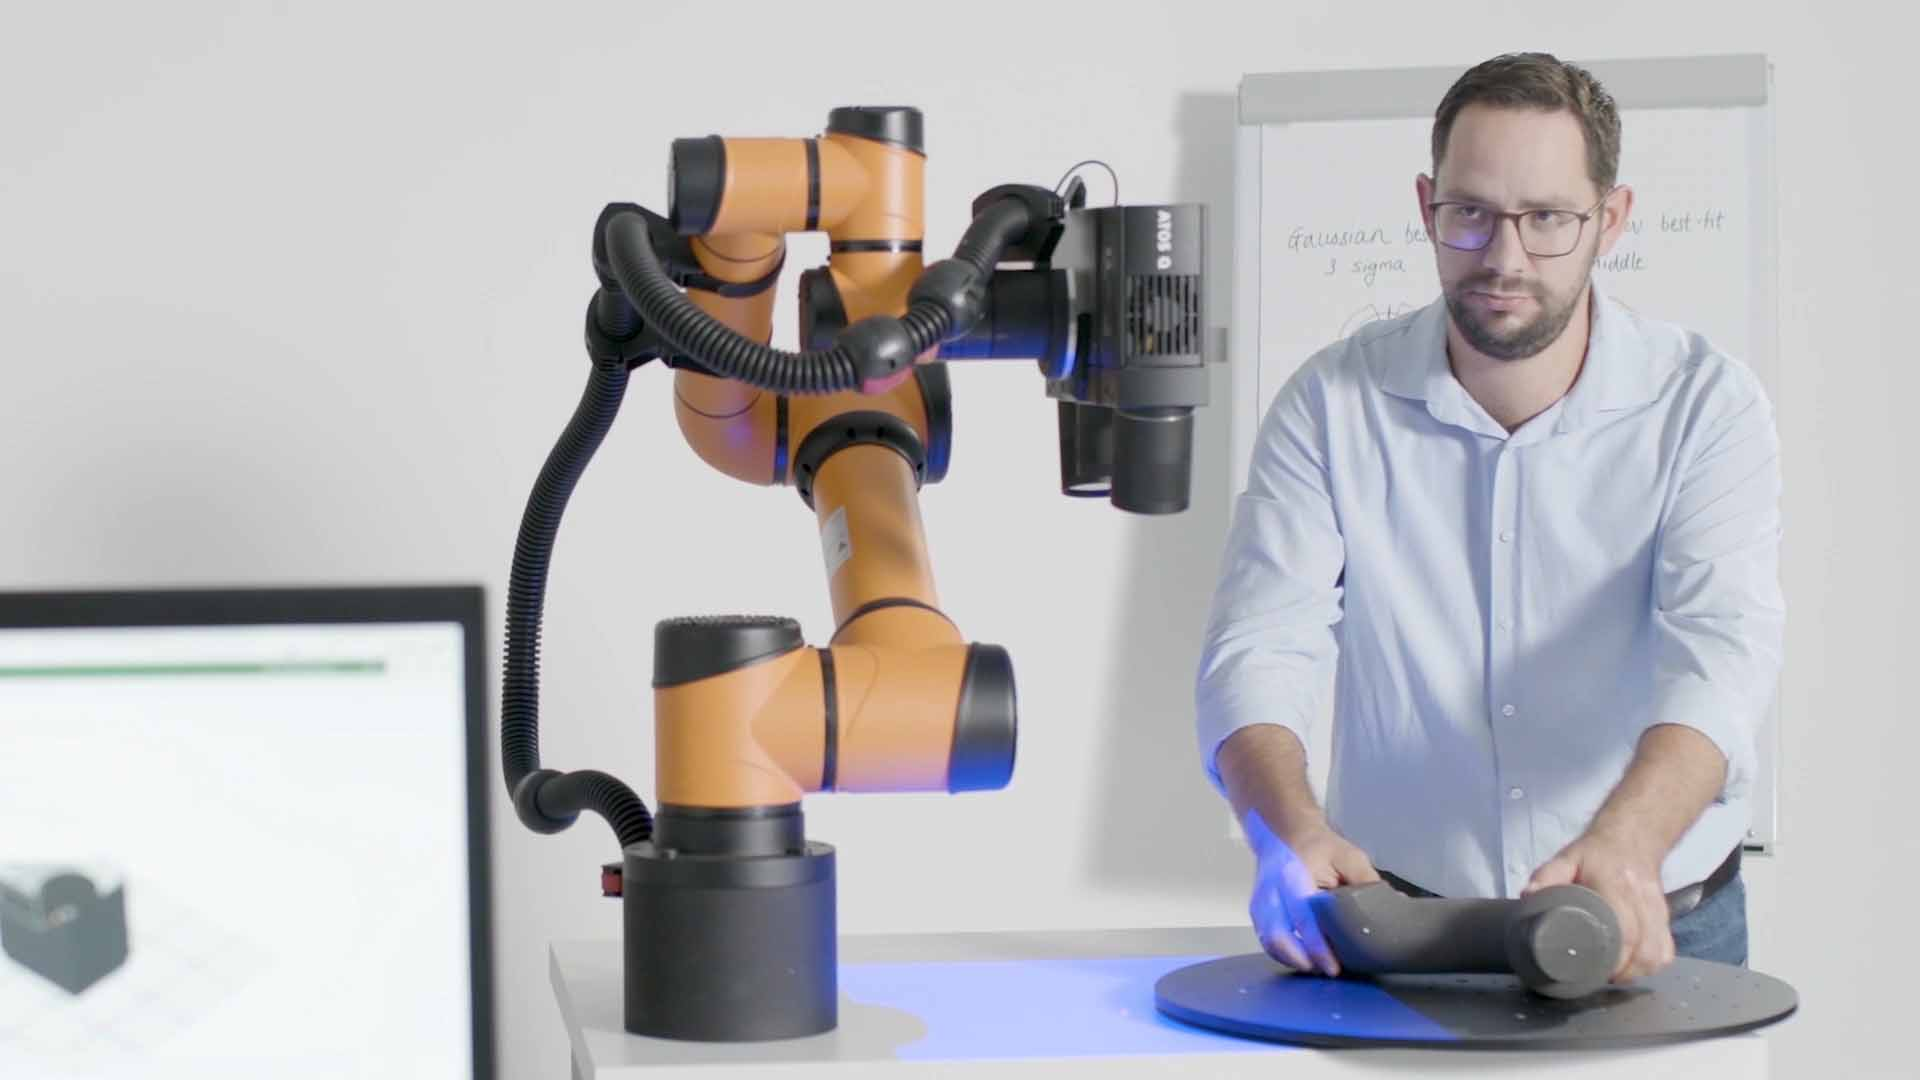 GOM ScanCobot combines accurate ATOS 3D scanning with a collaborative robot and a motorized rotation table to quickly capture high-quality data. Learn more during Capture 3D's live stream event on Thursday, March 25, 2021.